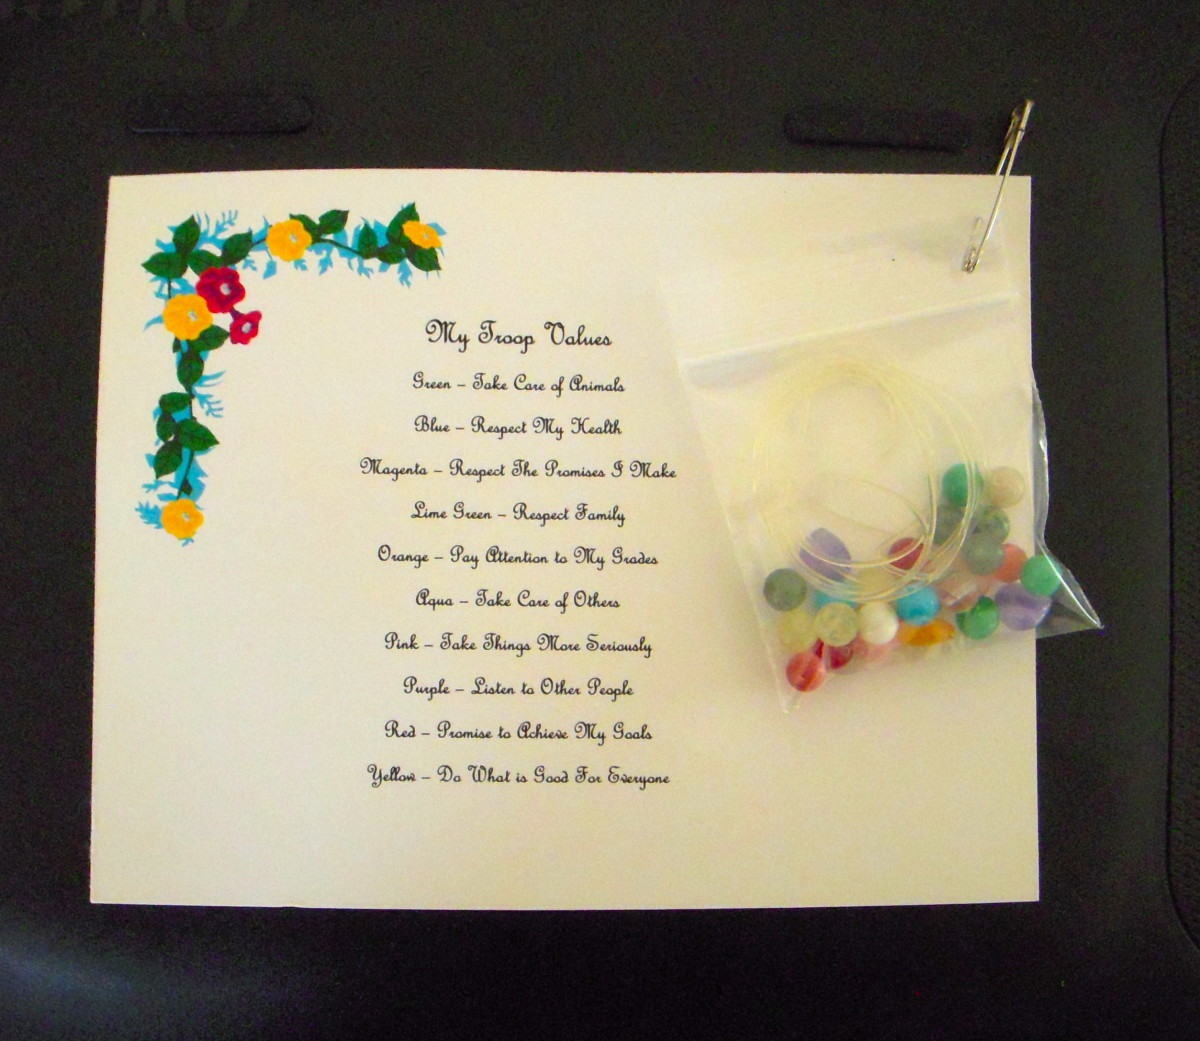 Troop values are represented by different colored beads. A pre-printed card that explains the meaning and value of each bead color is a part of this SWAP. Pin a small zip bag containing stretchy jewelry cording and beads.